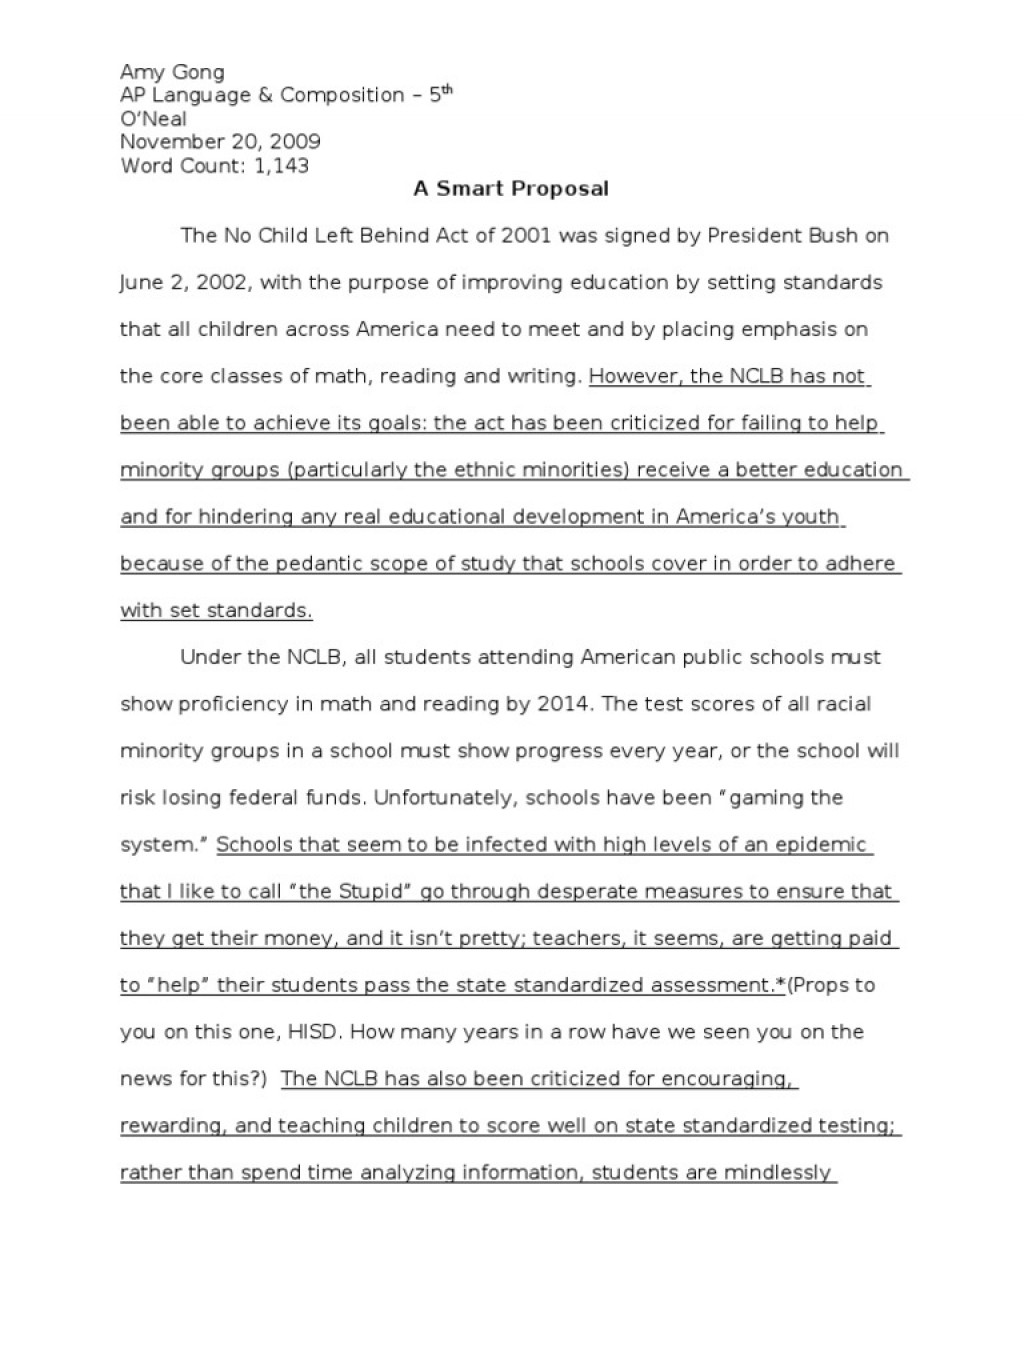 009 Essay Example Satire Satirical Of Samples Essays Good Examples Topics Global Beautiful On Gun Control Questions Ideas Large